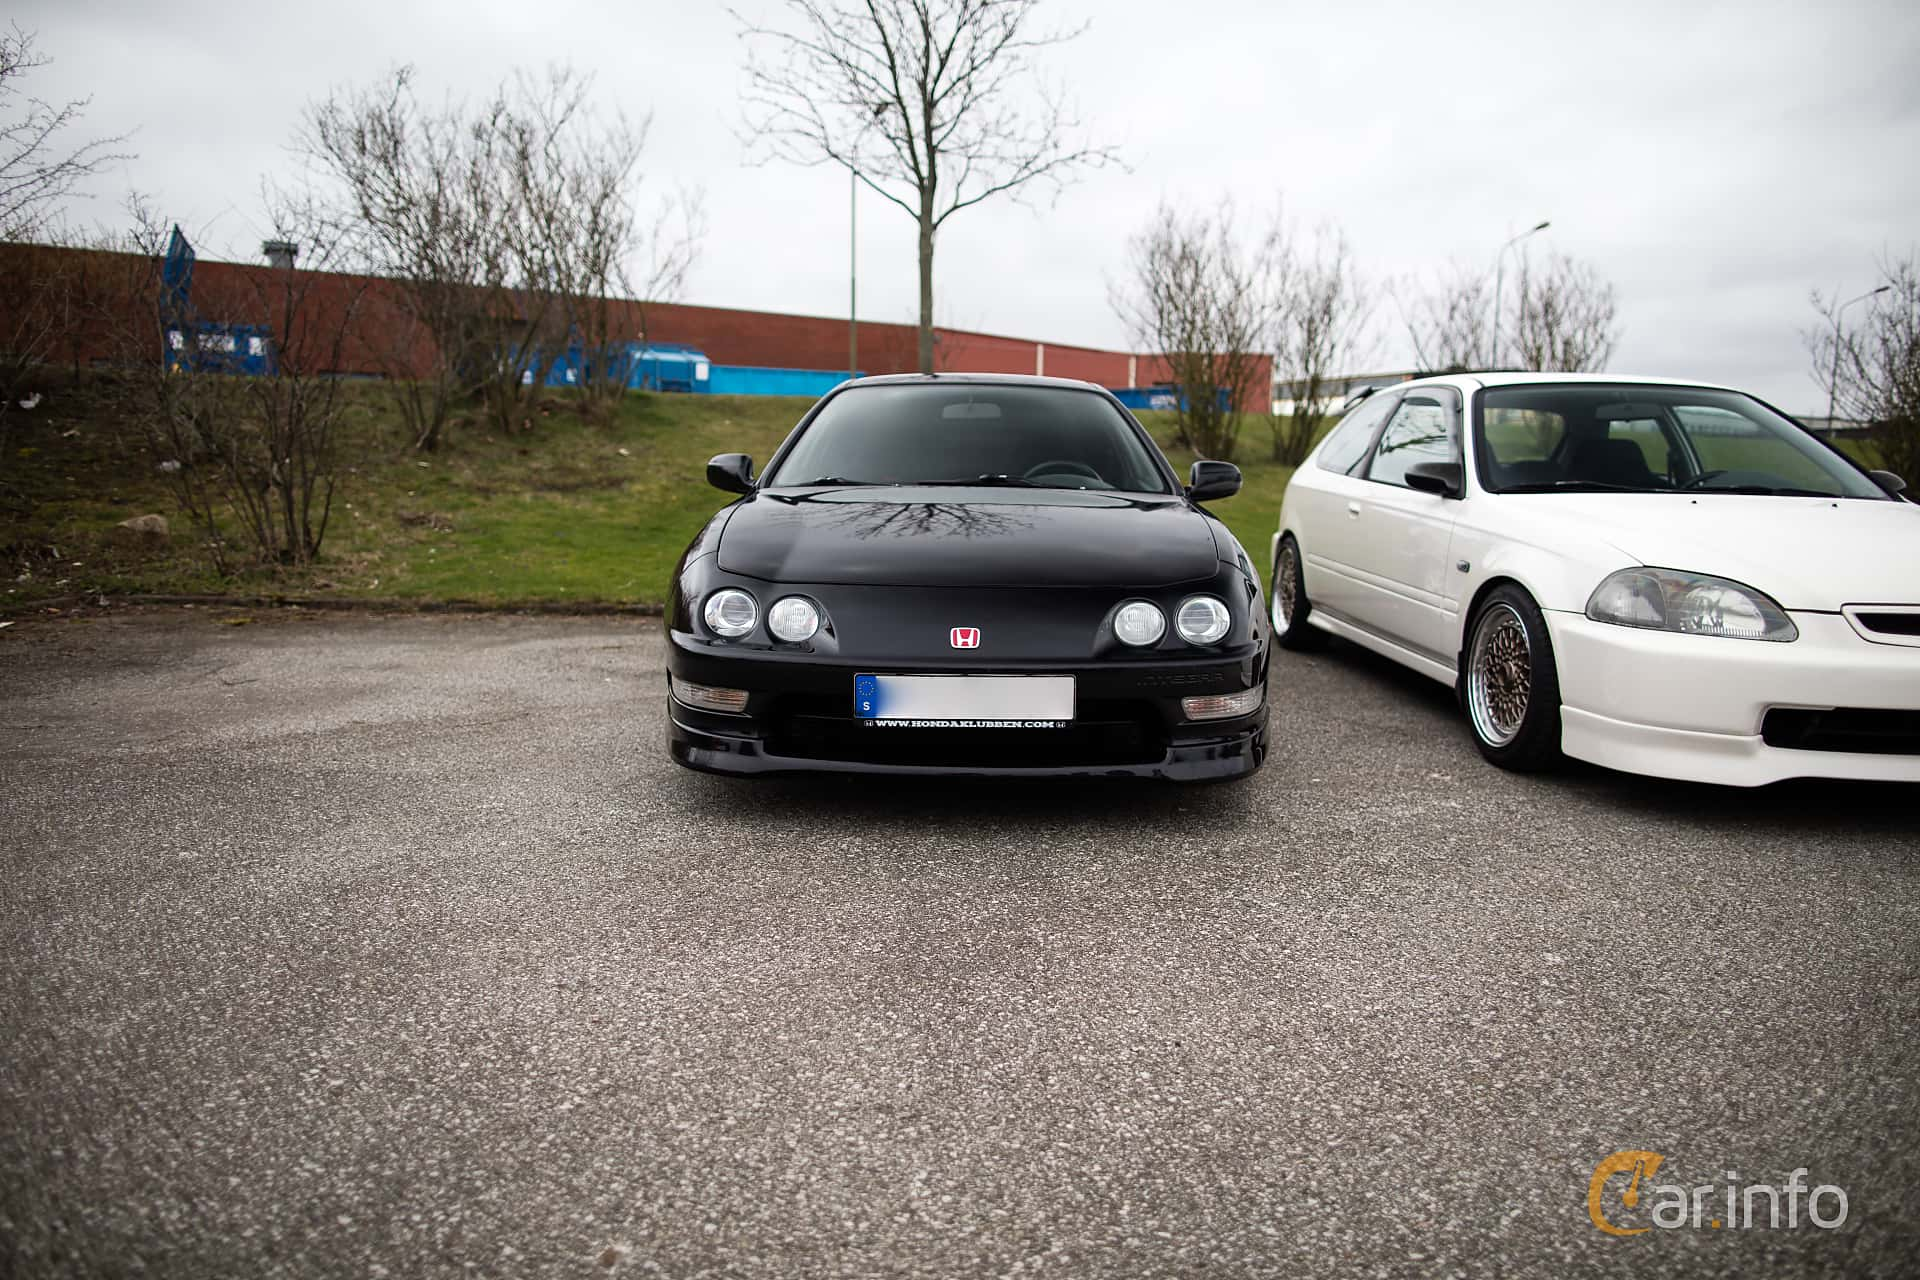 5 images of honda integra type-r 1.8 manual, 190hp, 1999jonasbonde